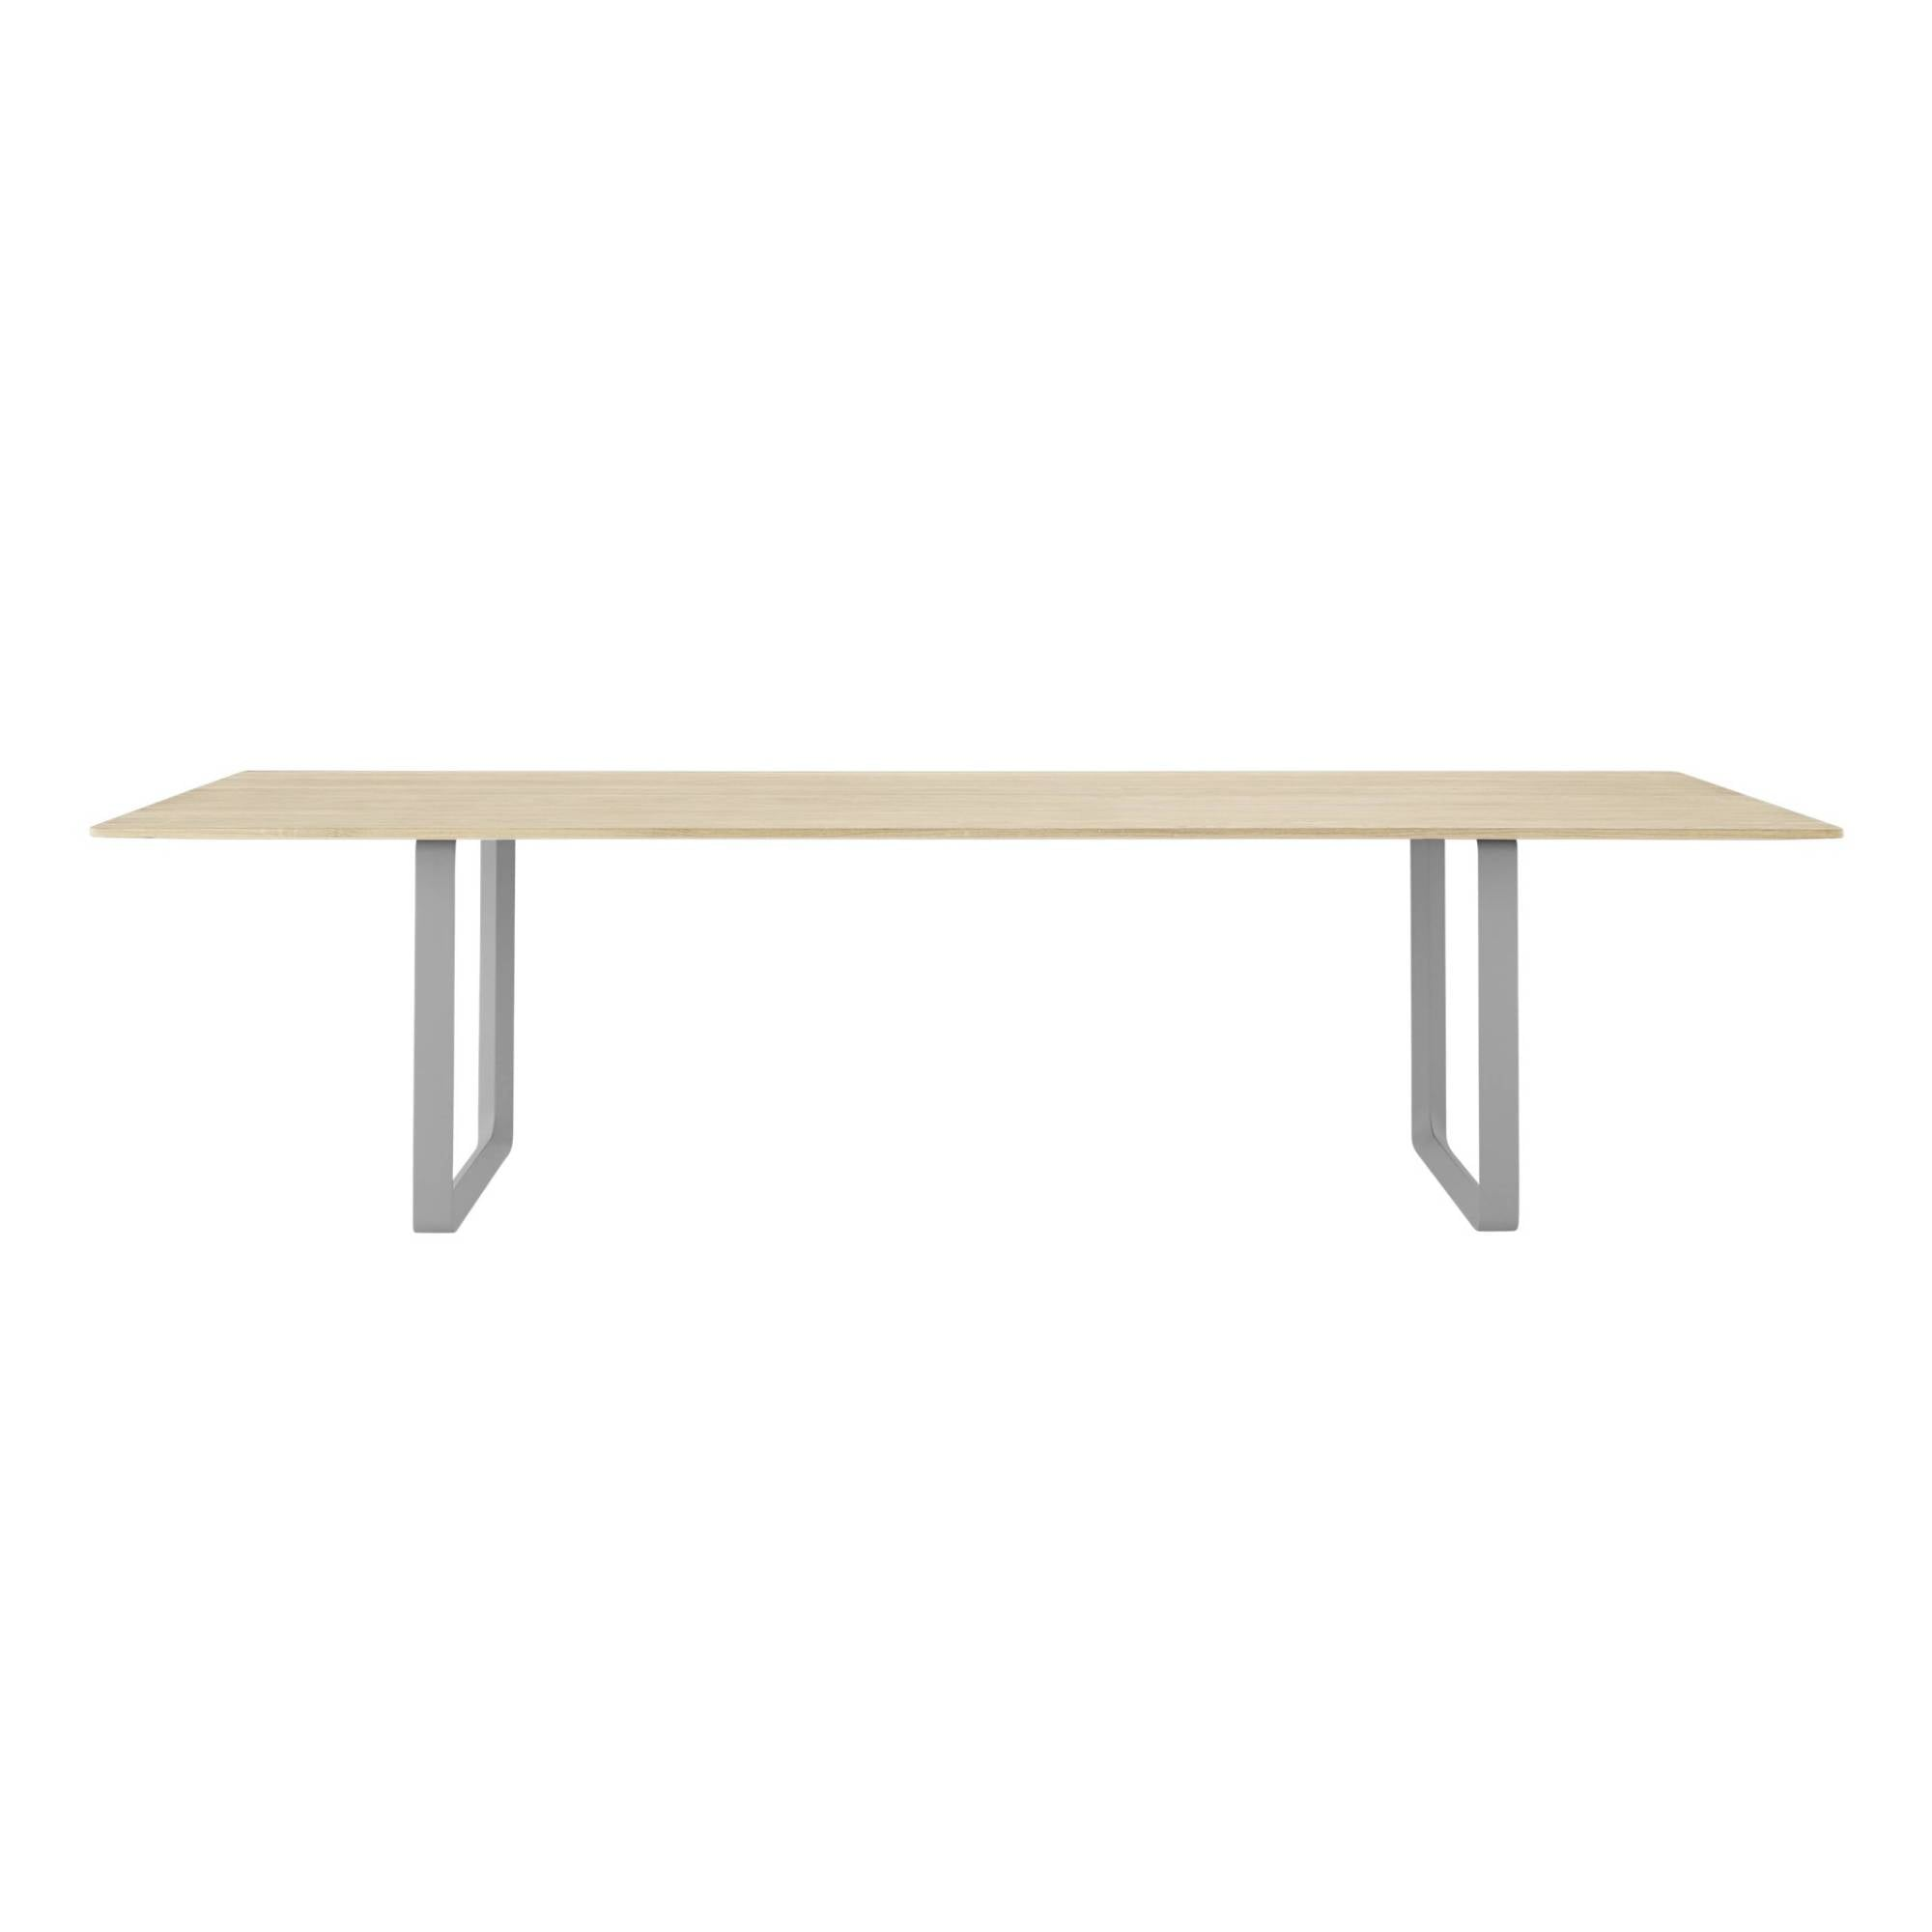 70/70 Table: Solid Oak + XX Large + Grey